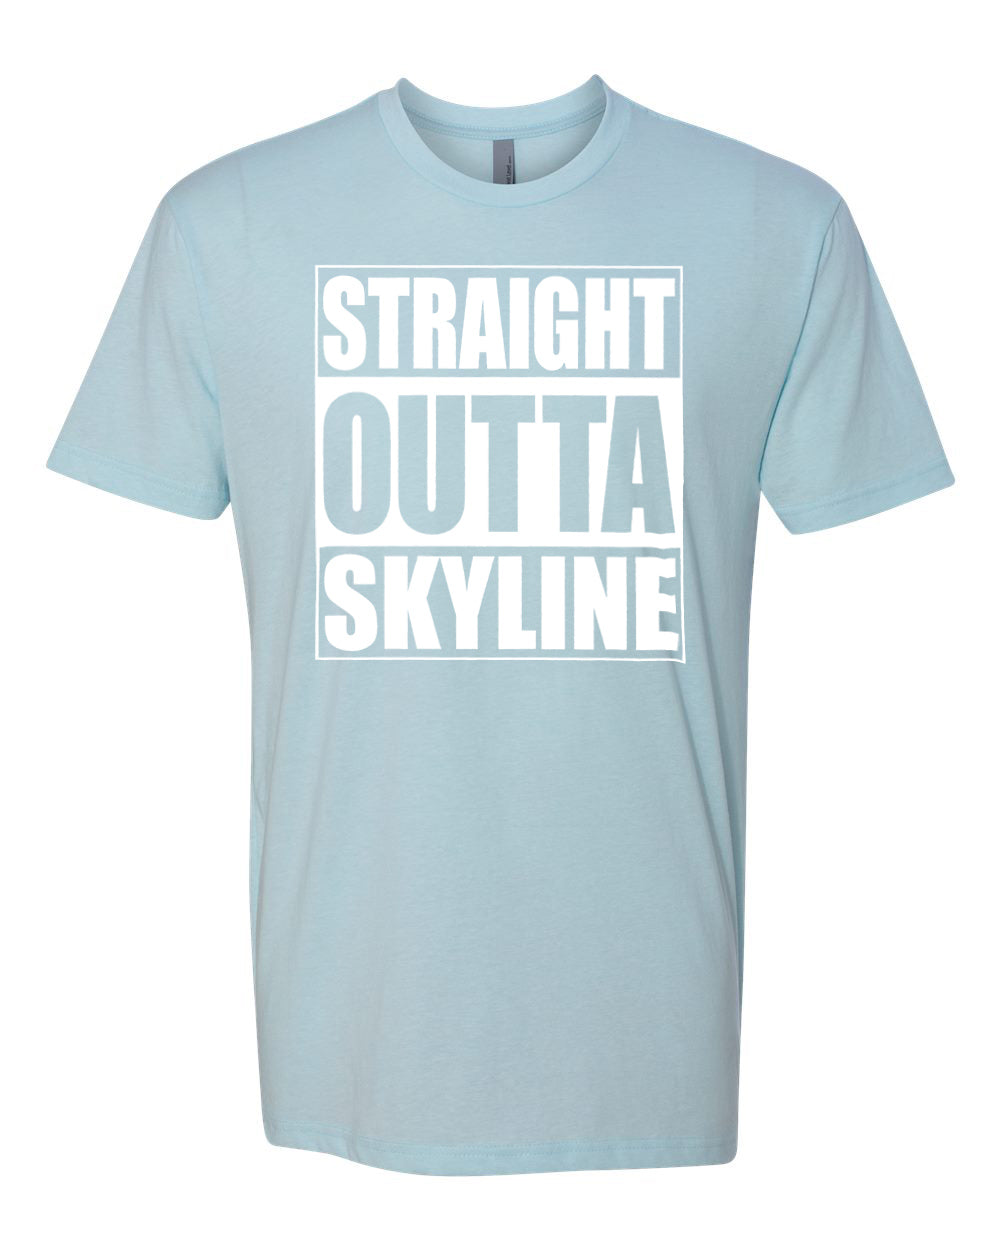 SKYLINE HS – Next Level Fitted Crew Tee – Straight Outta Skyline (White/LtBlue)